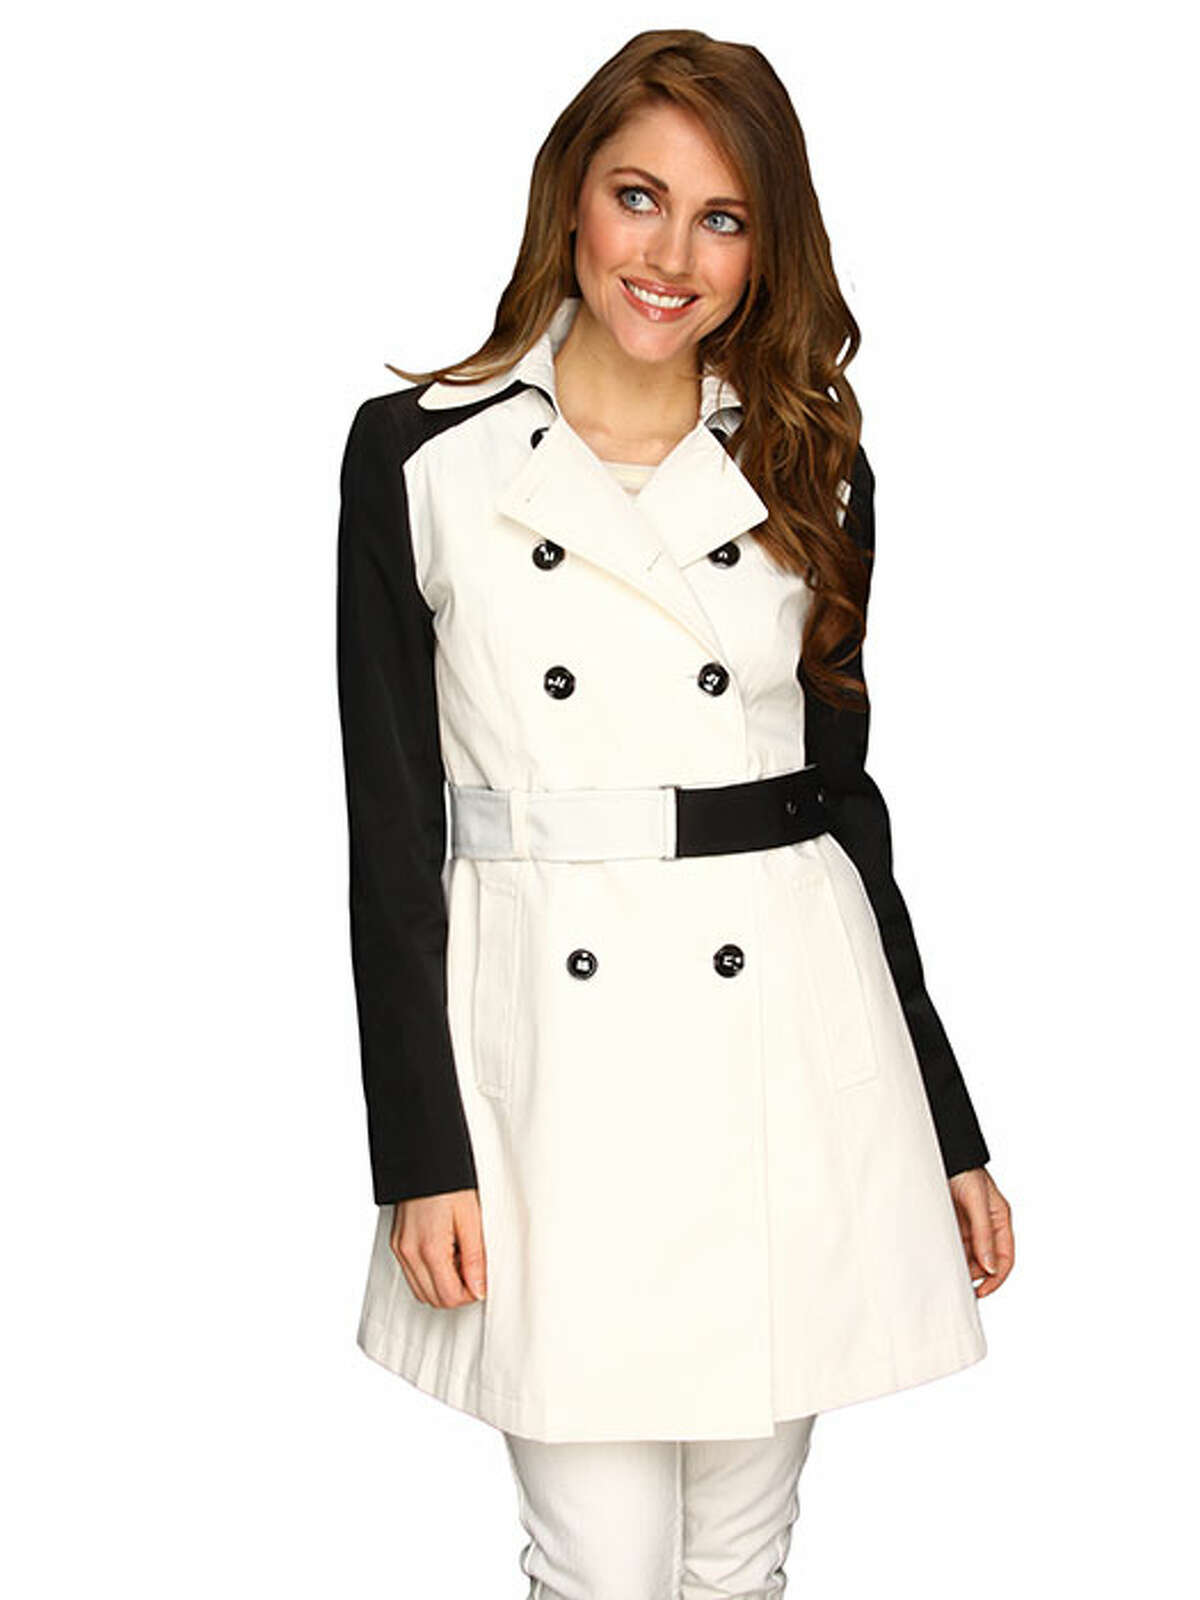 What do you get when you combine a classic silhouette and black and white color blocking? A thoroughly modern take on a jacket that's proven to work. DKNY Double Breasted Trench w/ Contrast Sleeve, $74.99, 6pm.